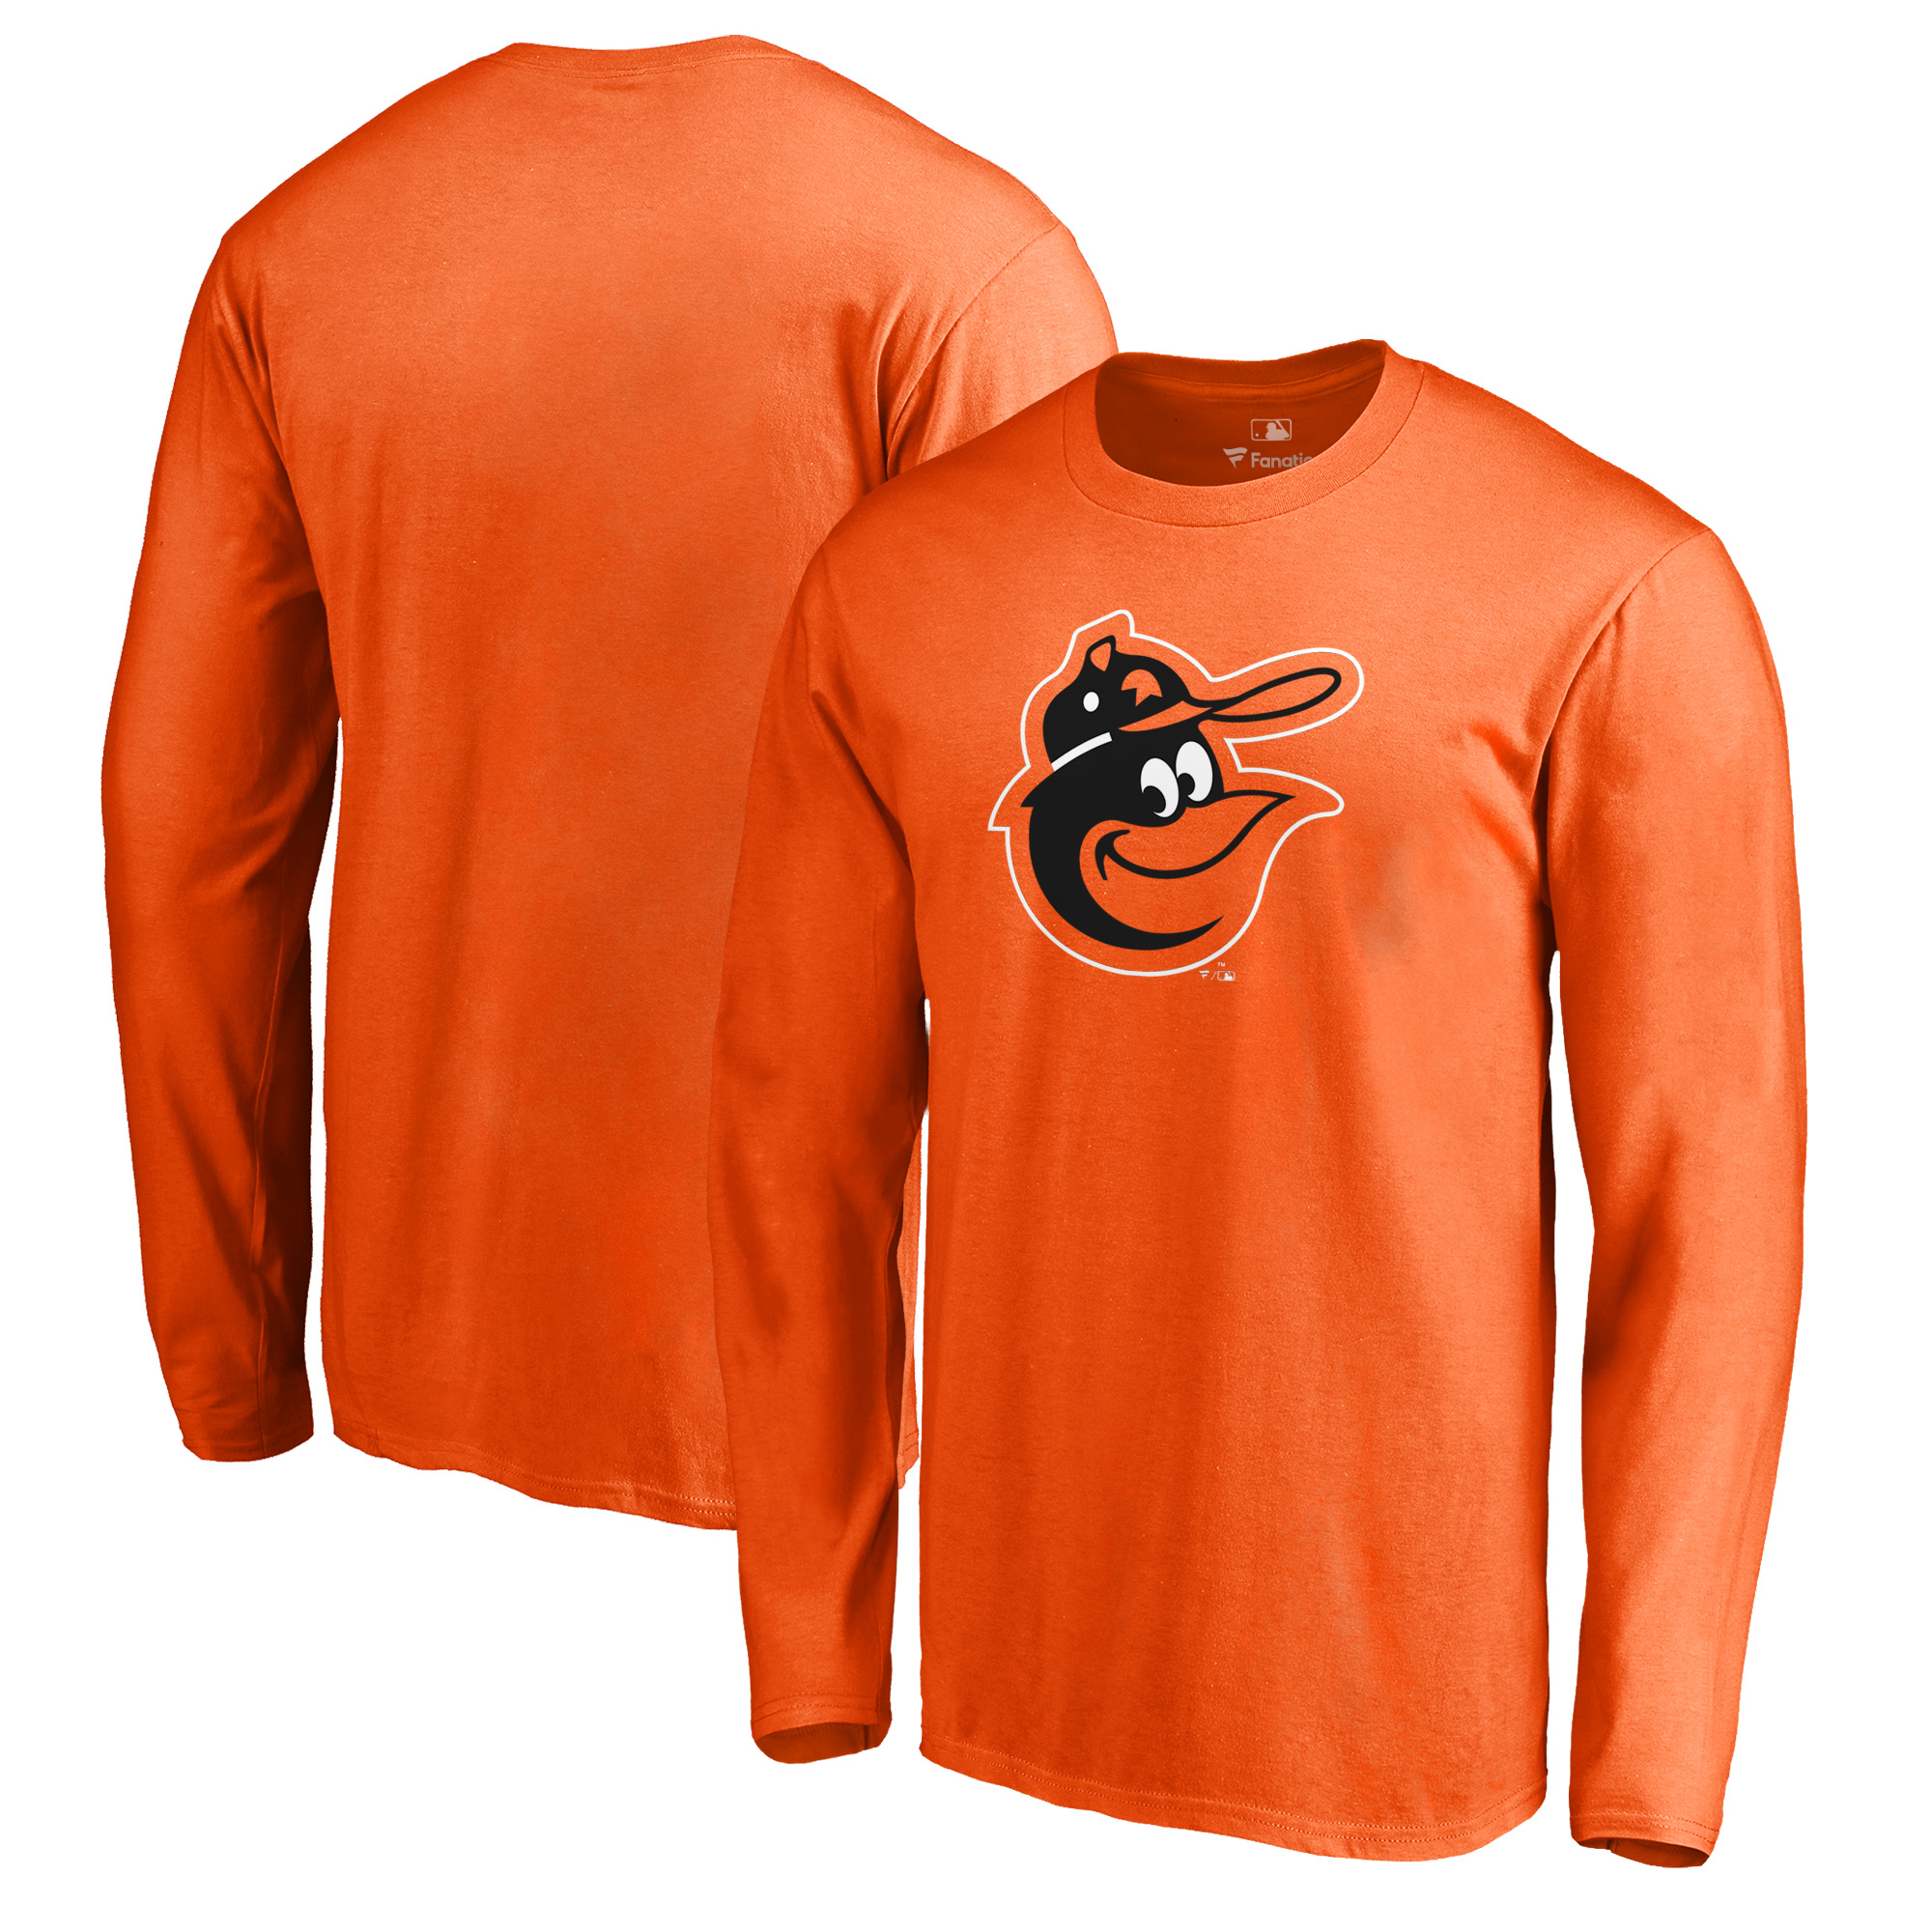 Baltimore Orioles Fanatics Branded Cooperstown Collection Huntington Long Sleeve T-Shirt - Orange